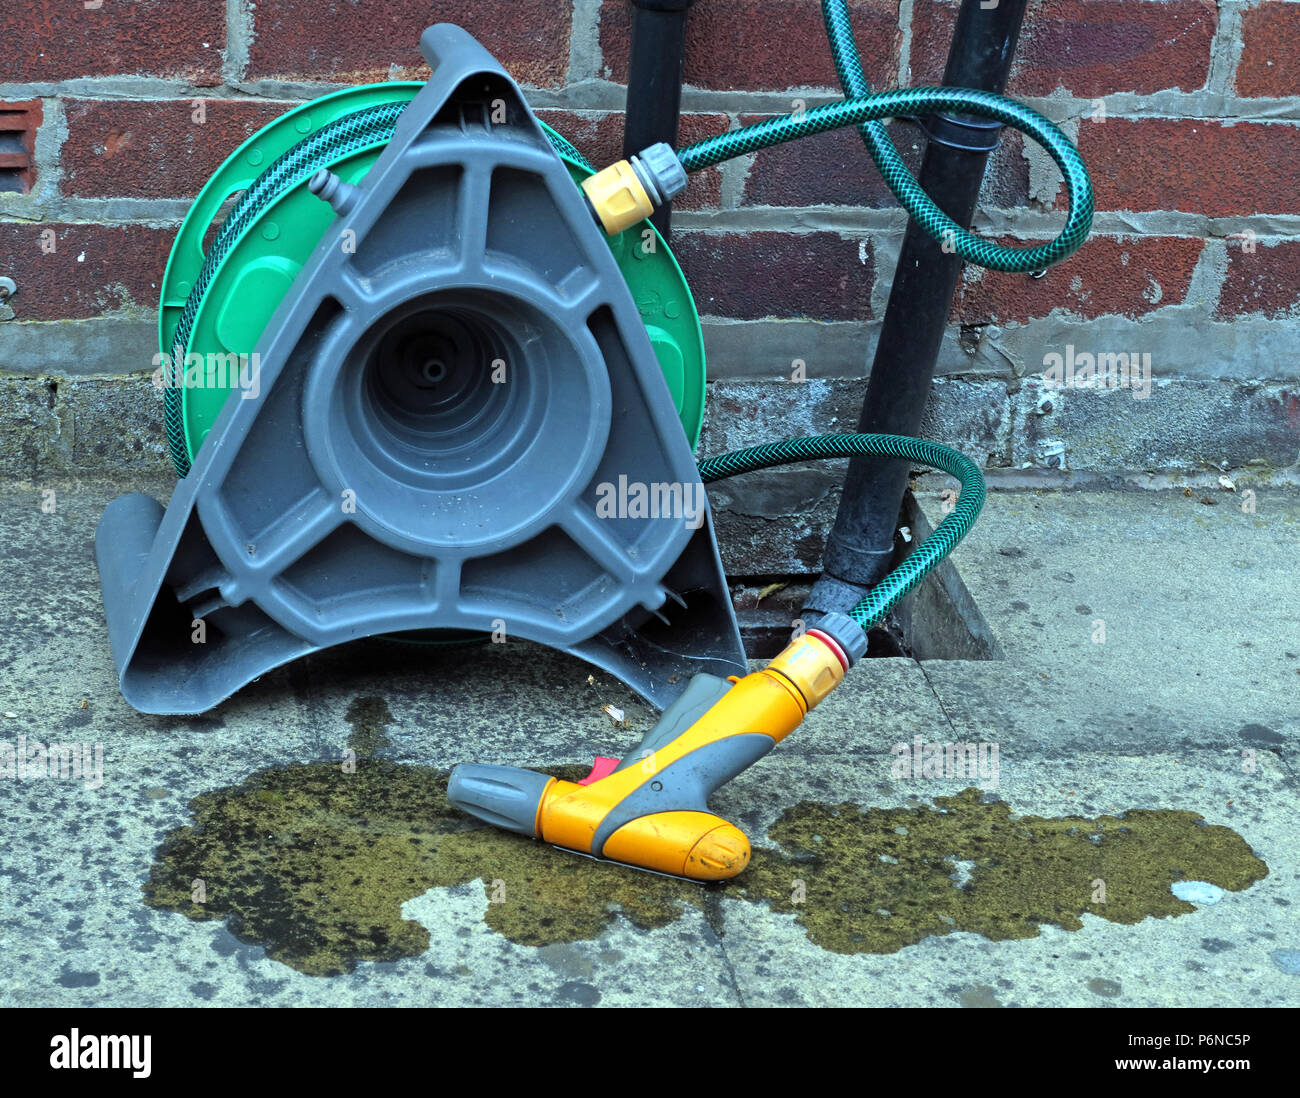 @Hotpixuk,GoTonySmith,hose pipe,hose,pipe,system,Hosepipe,reel,connected,to a,in,garden,with,leak,water,leaking,heat wave,drought,shortage,water shortage,chances,hot,weather,hot weather,trigger,waste,wasting water,bone,dry,dry environment,United Kingdom,British,Great Britain,Met Office,summer,Environment Agency,Restrictions,on water usage,water use,water shortage issue